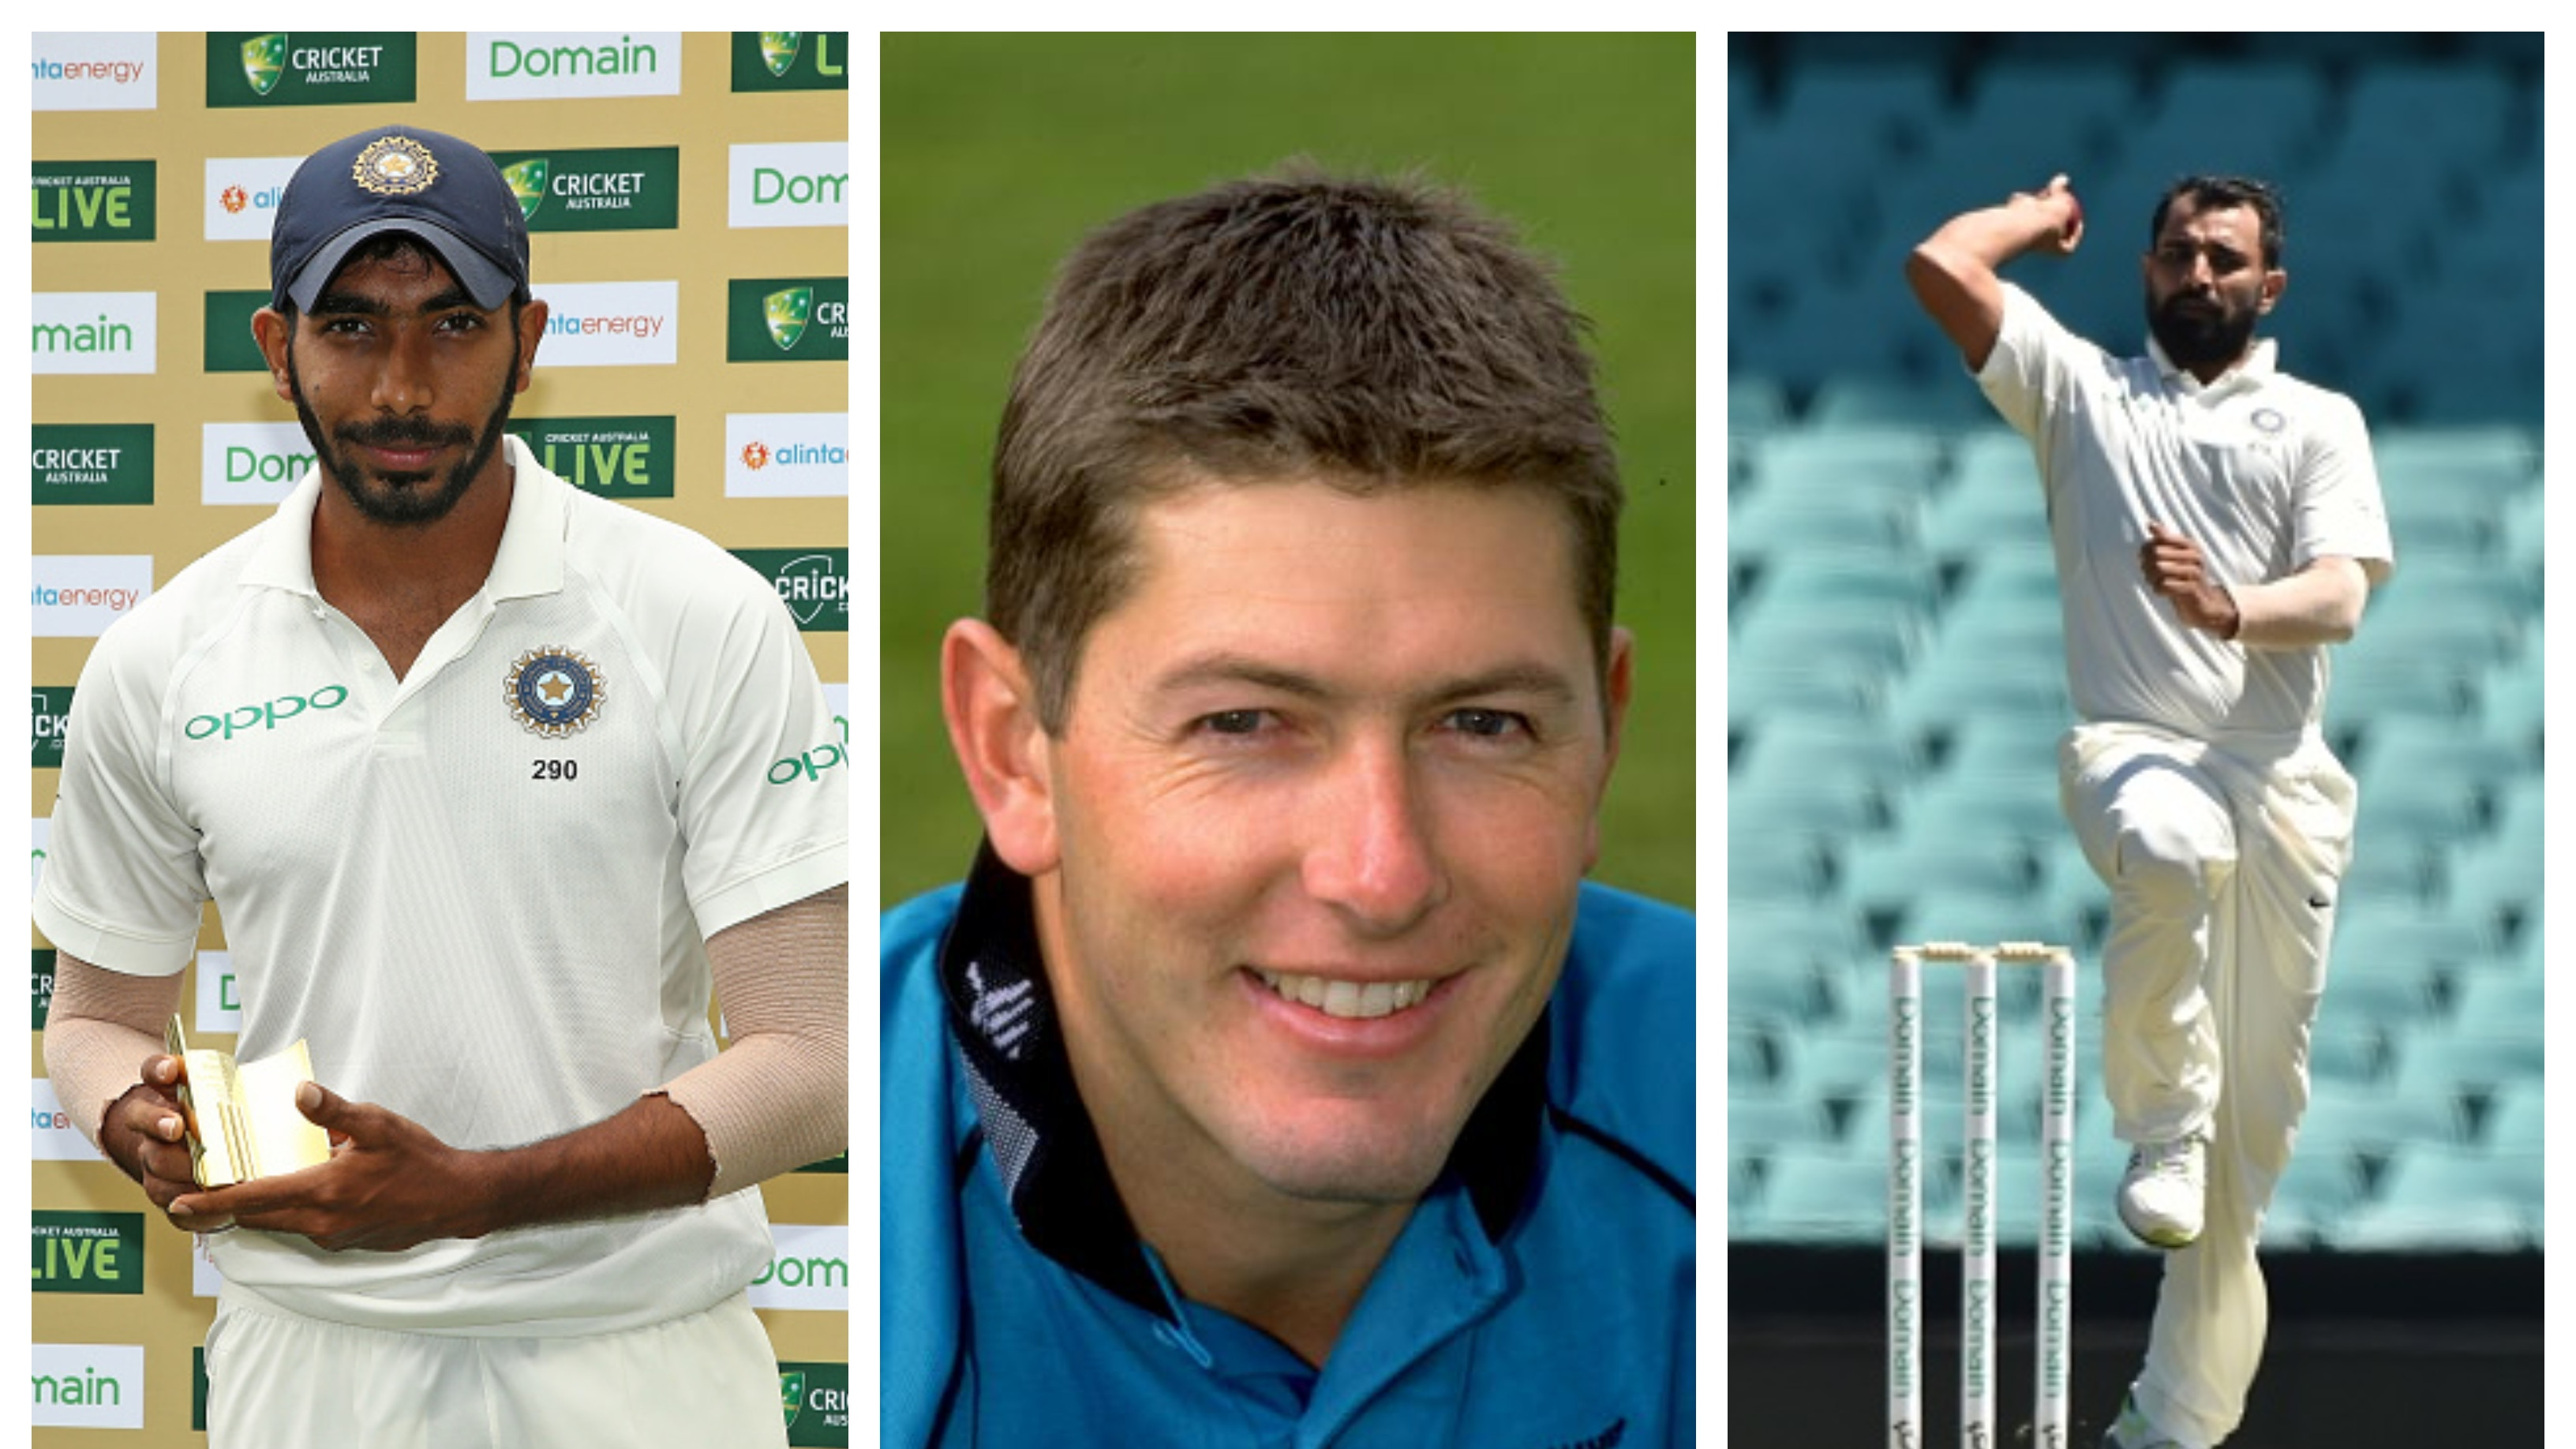 Geoff Allott in praise of Jasprit Bumrah and Mohammad Shami